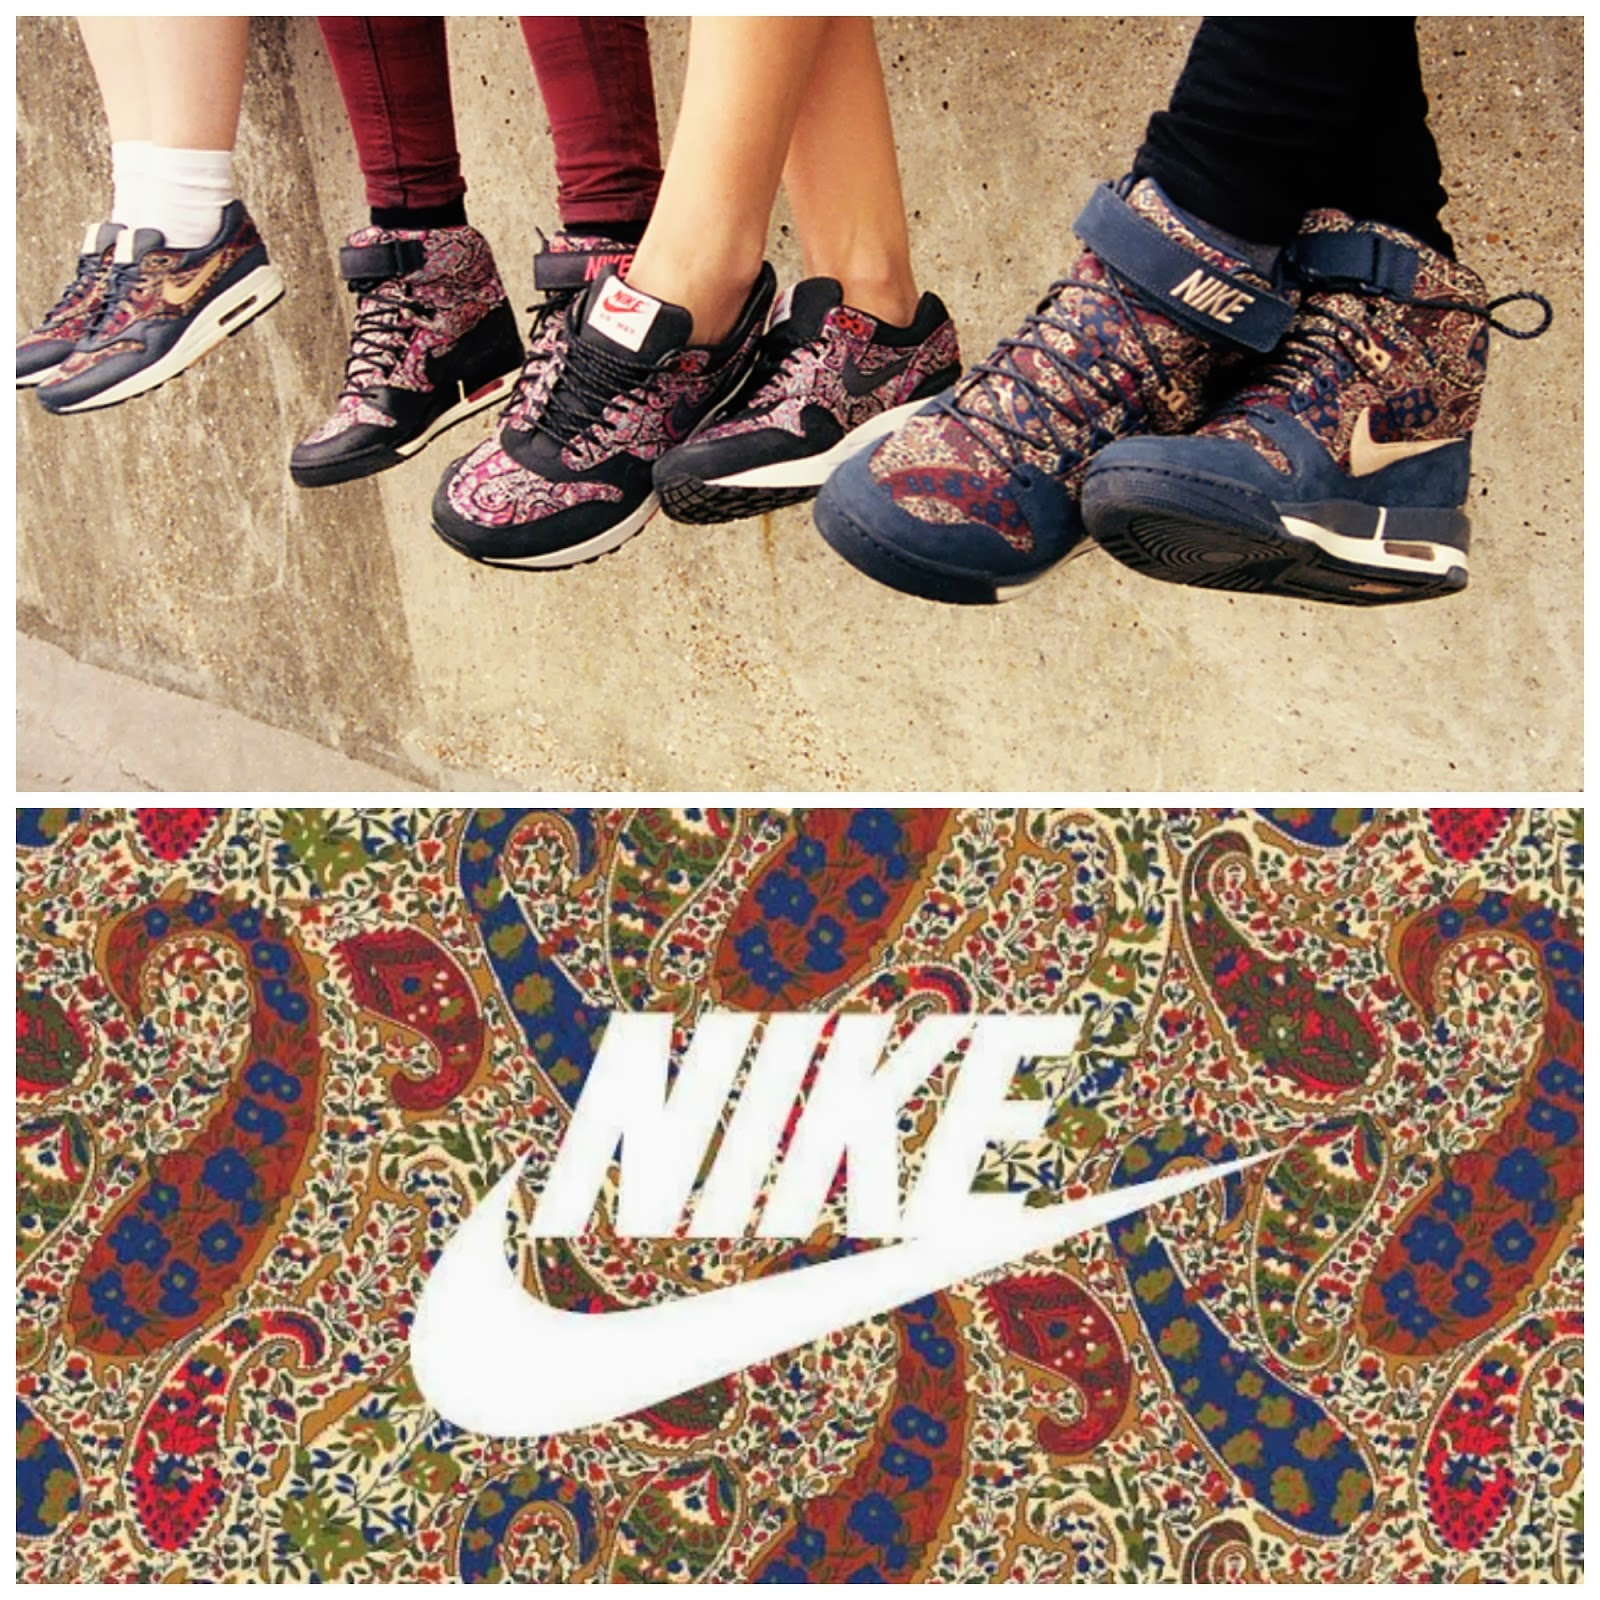 premium selection 19132 07077 Nike air revolution sky high is one series 2014 new hot shoes . This nike  air revolution sky high trainers is in london liberty pattern .